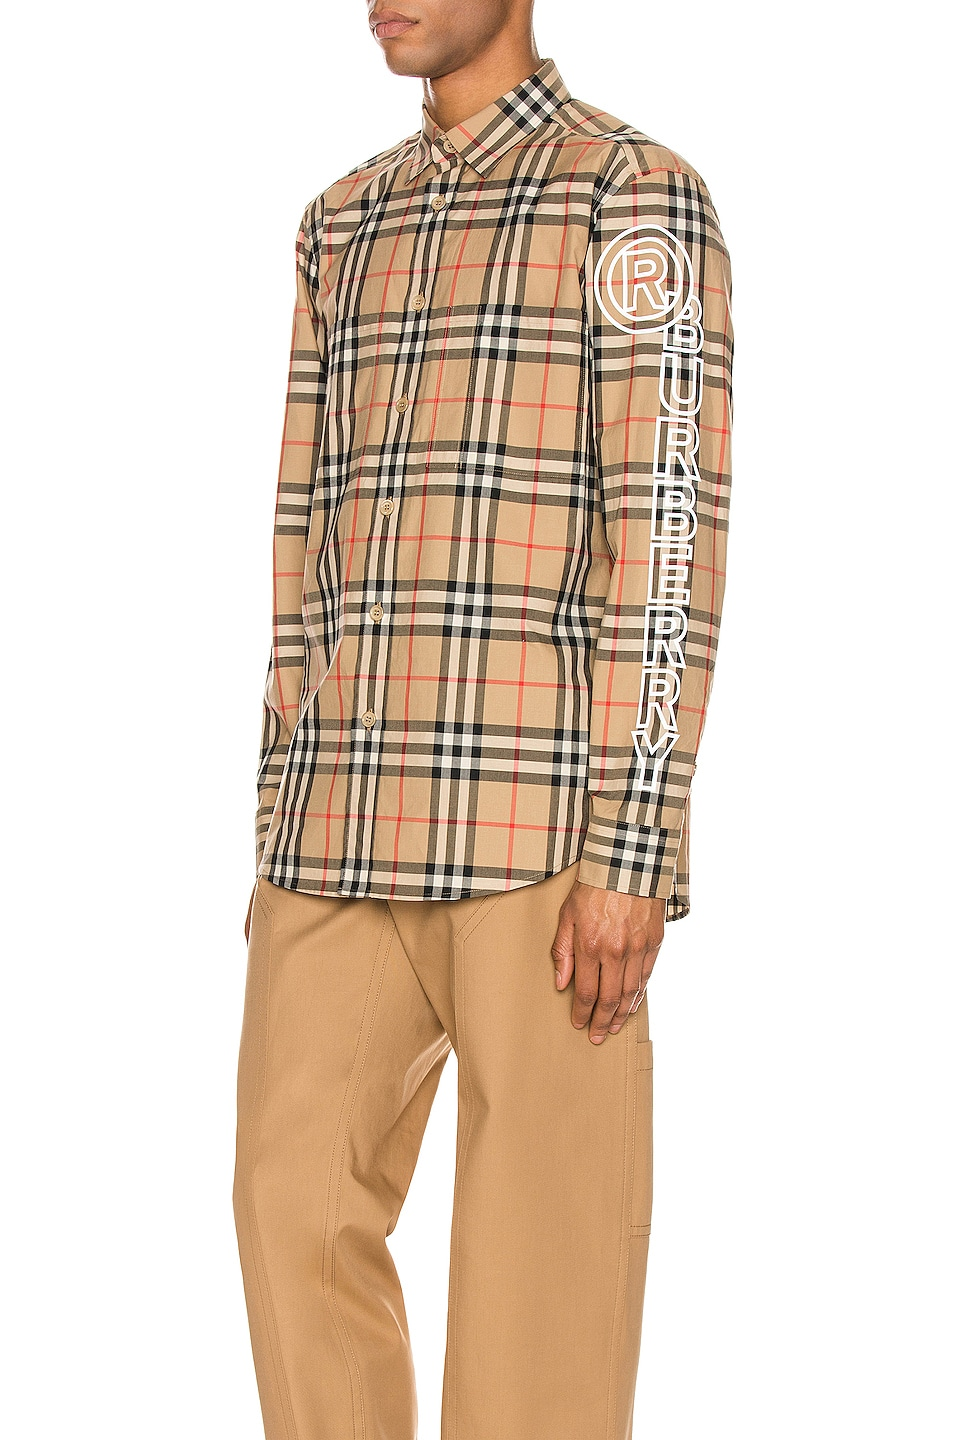 Image 1 of Burberry Camerson Long Sleeve Shirt in Archive Beige IP Check